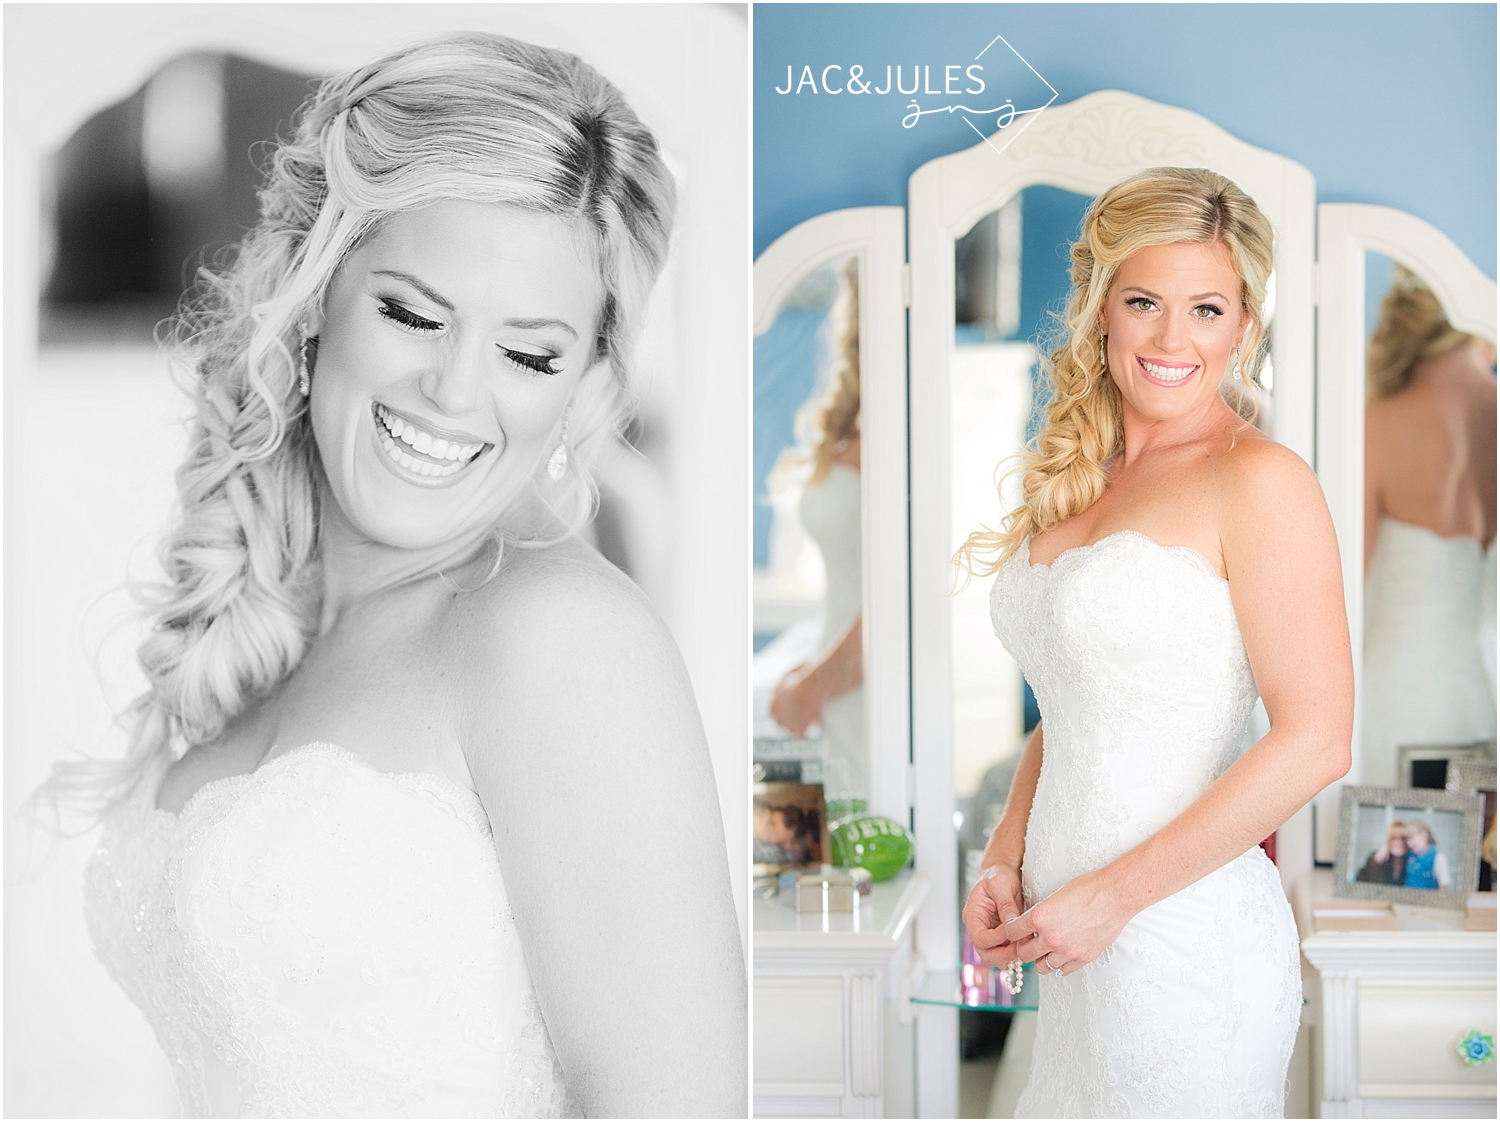 jacnjules photographs bride getting ready for her wedding at her home in wall township nj